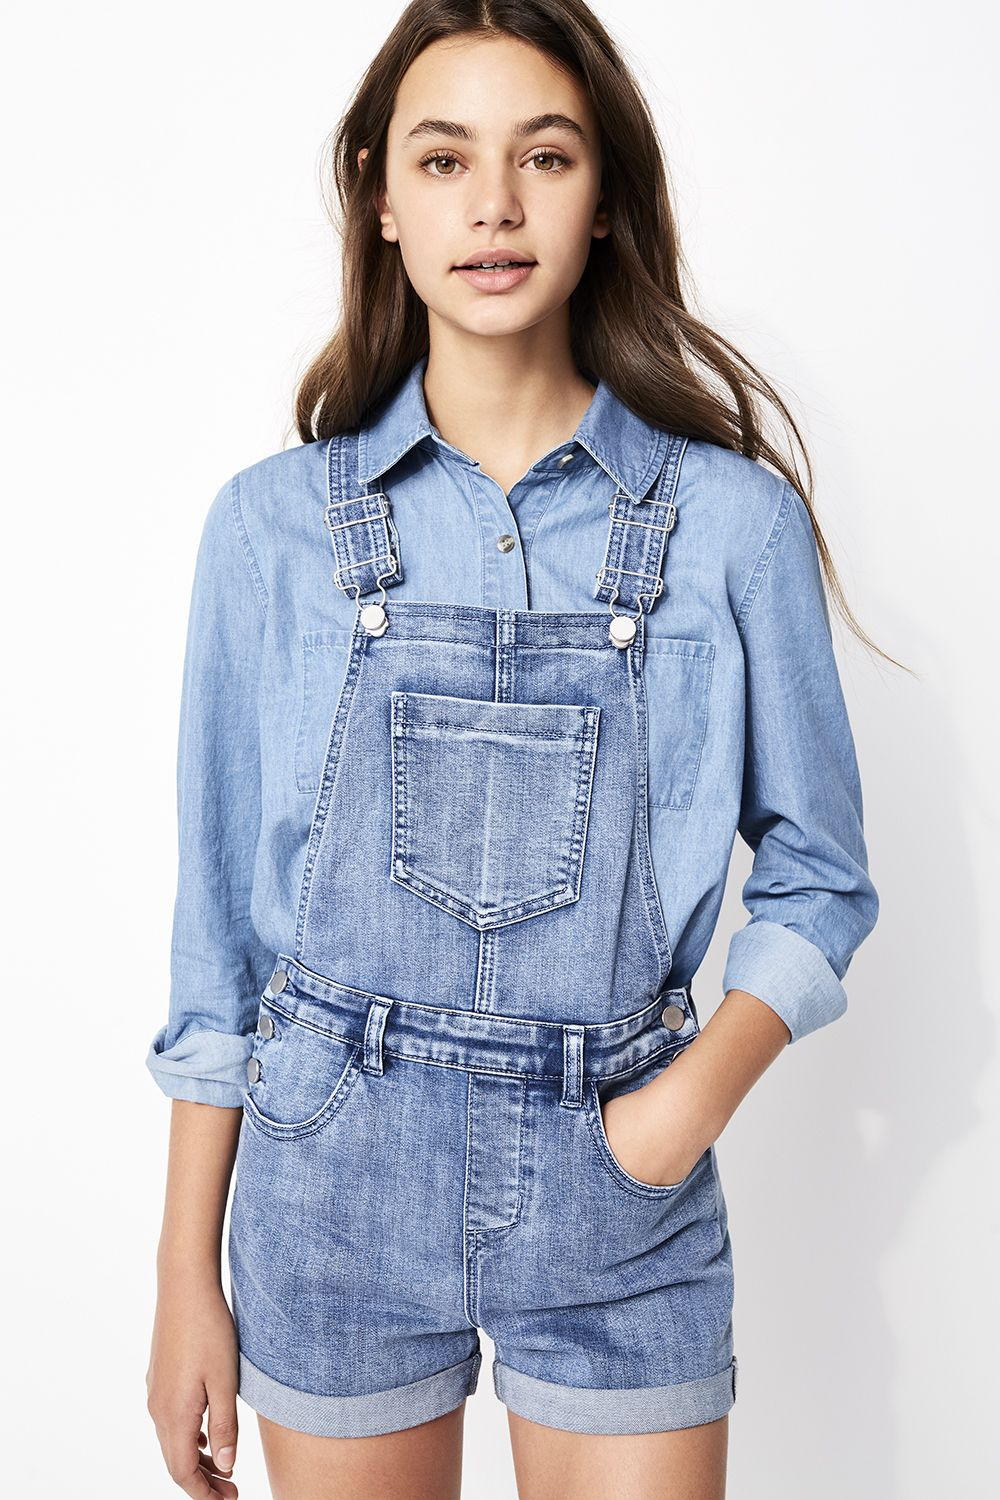 Teenage girl with overalls carlson naked sex